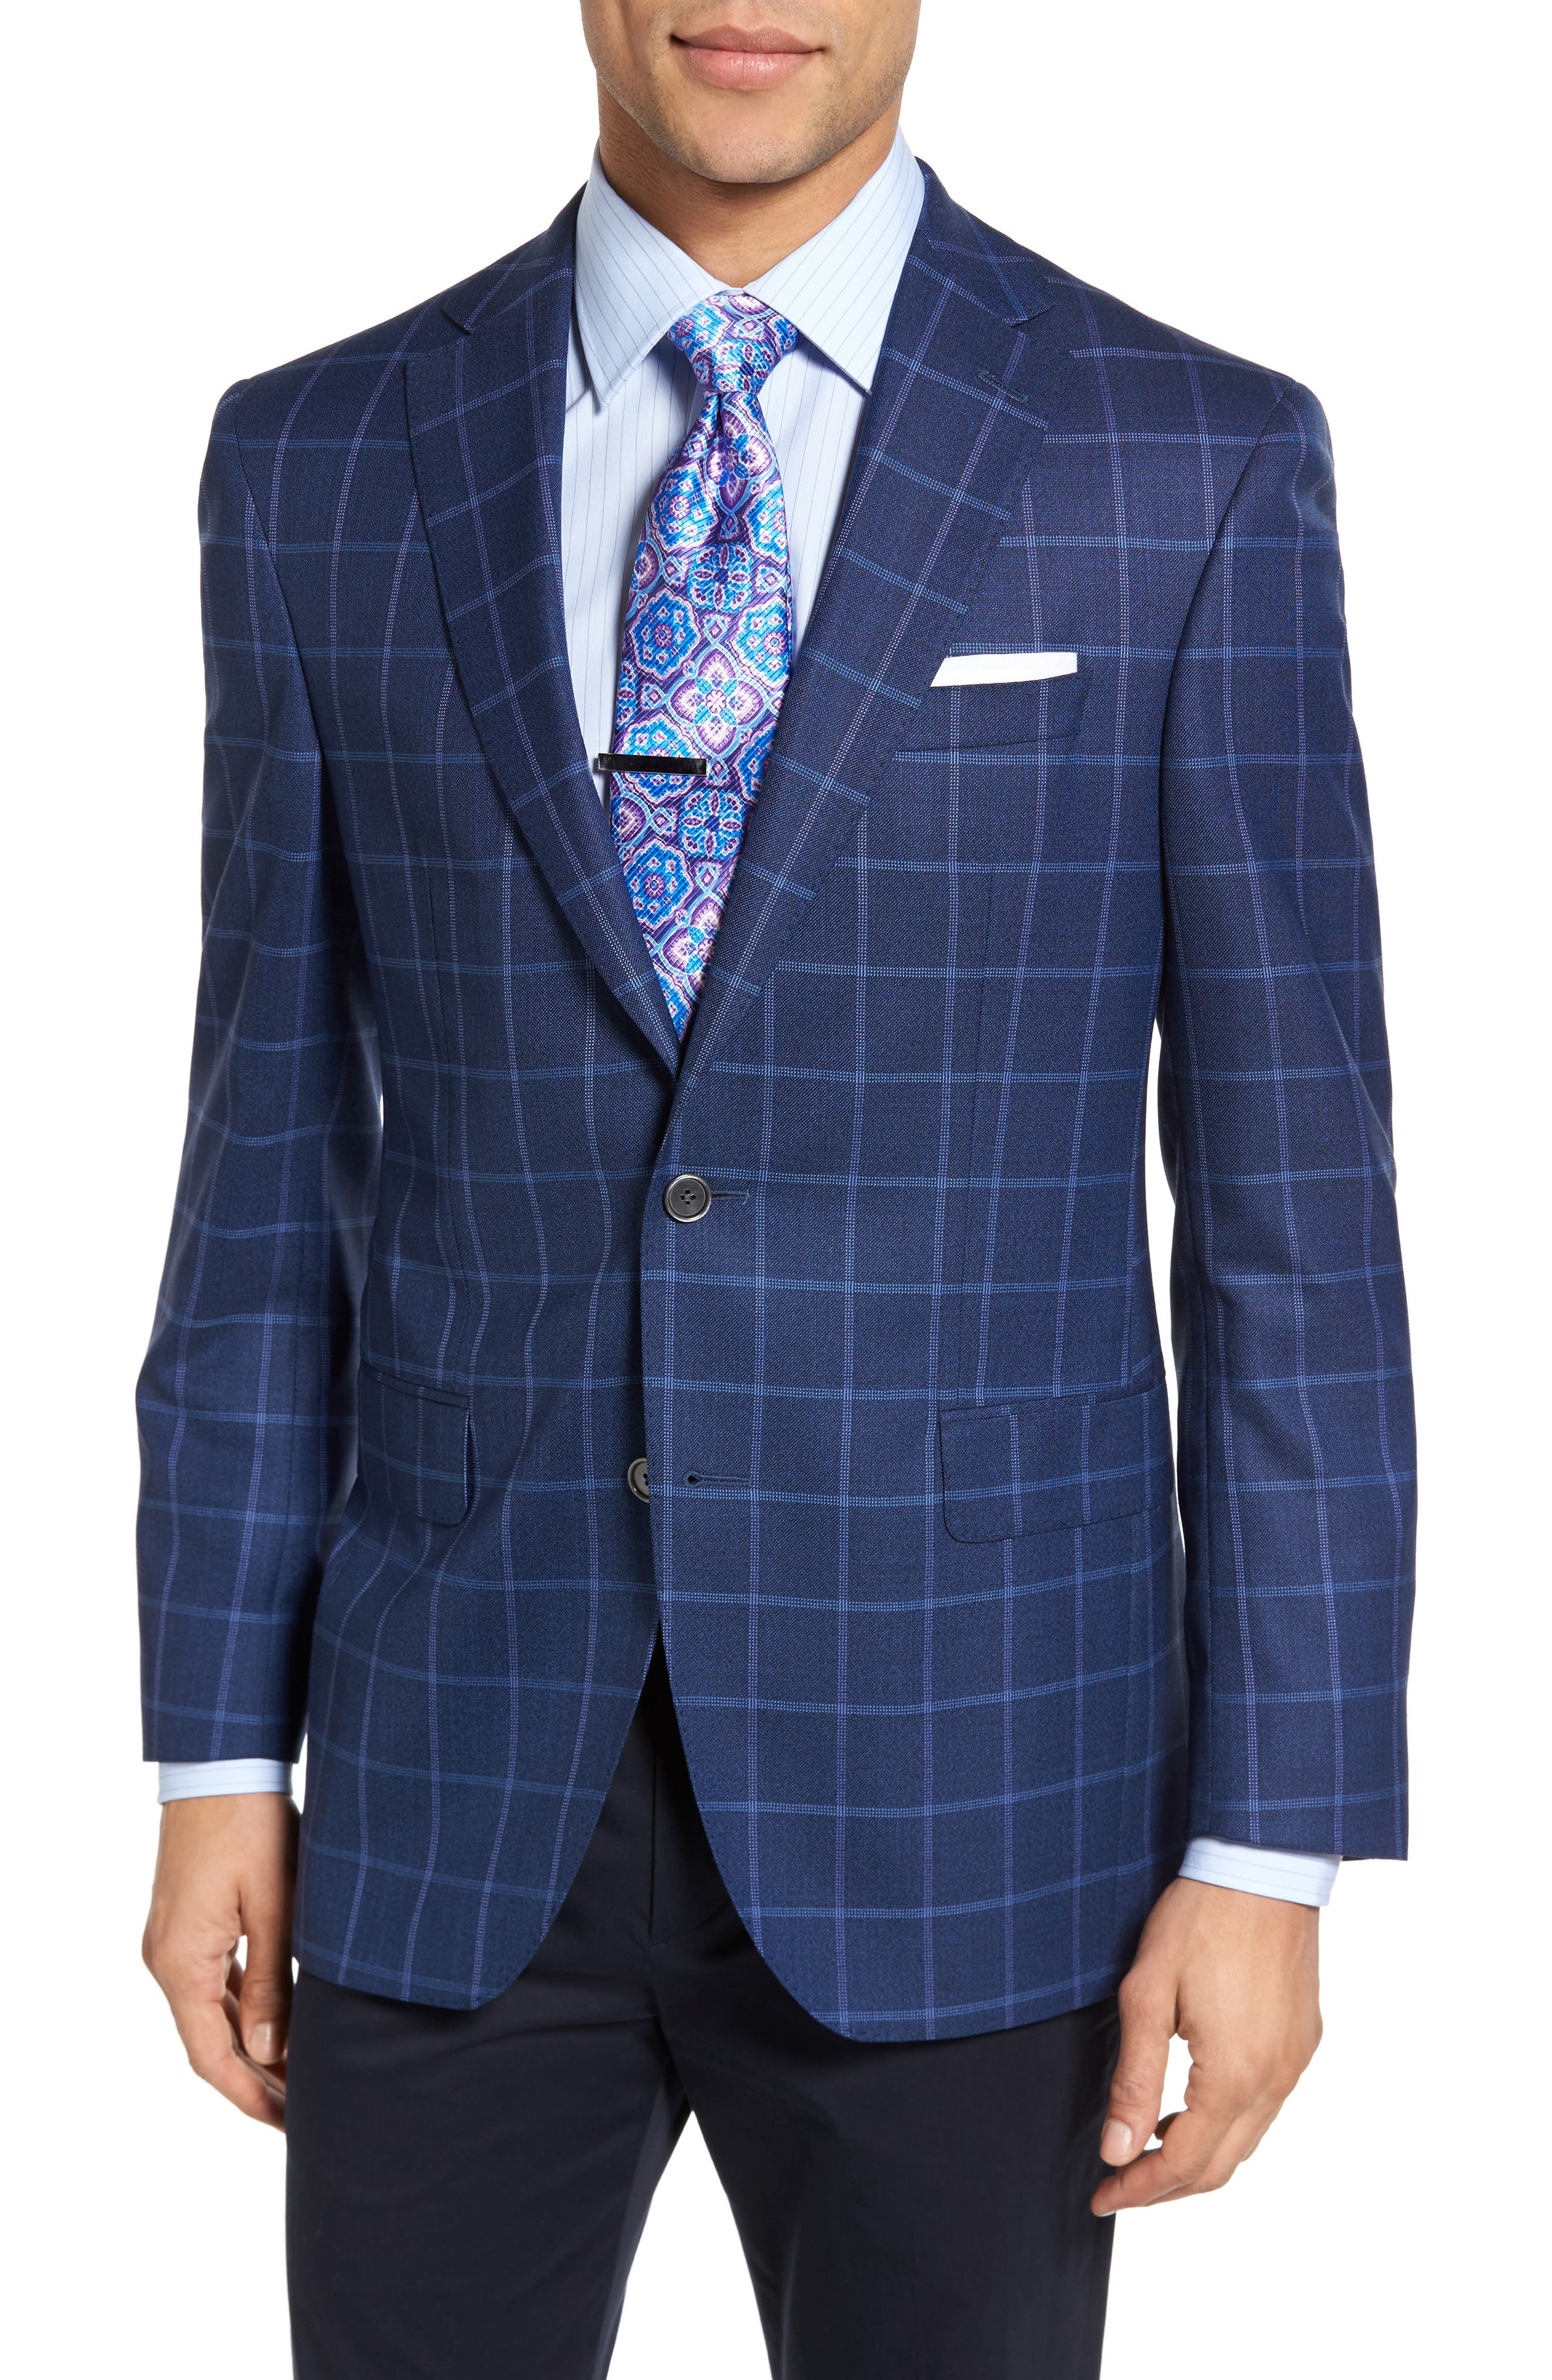 Alternate Image 1 Selected - David Donahue Connor Classic Fit Windowpane Wool Sport Coat